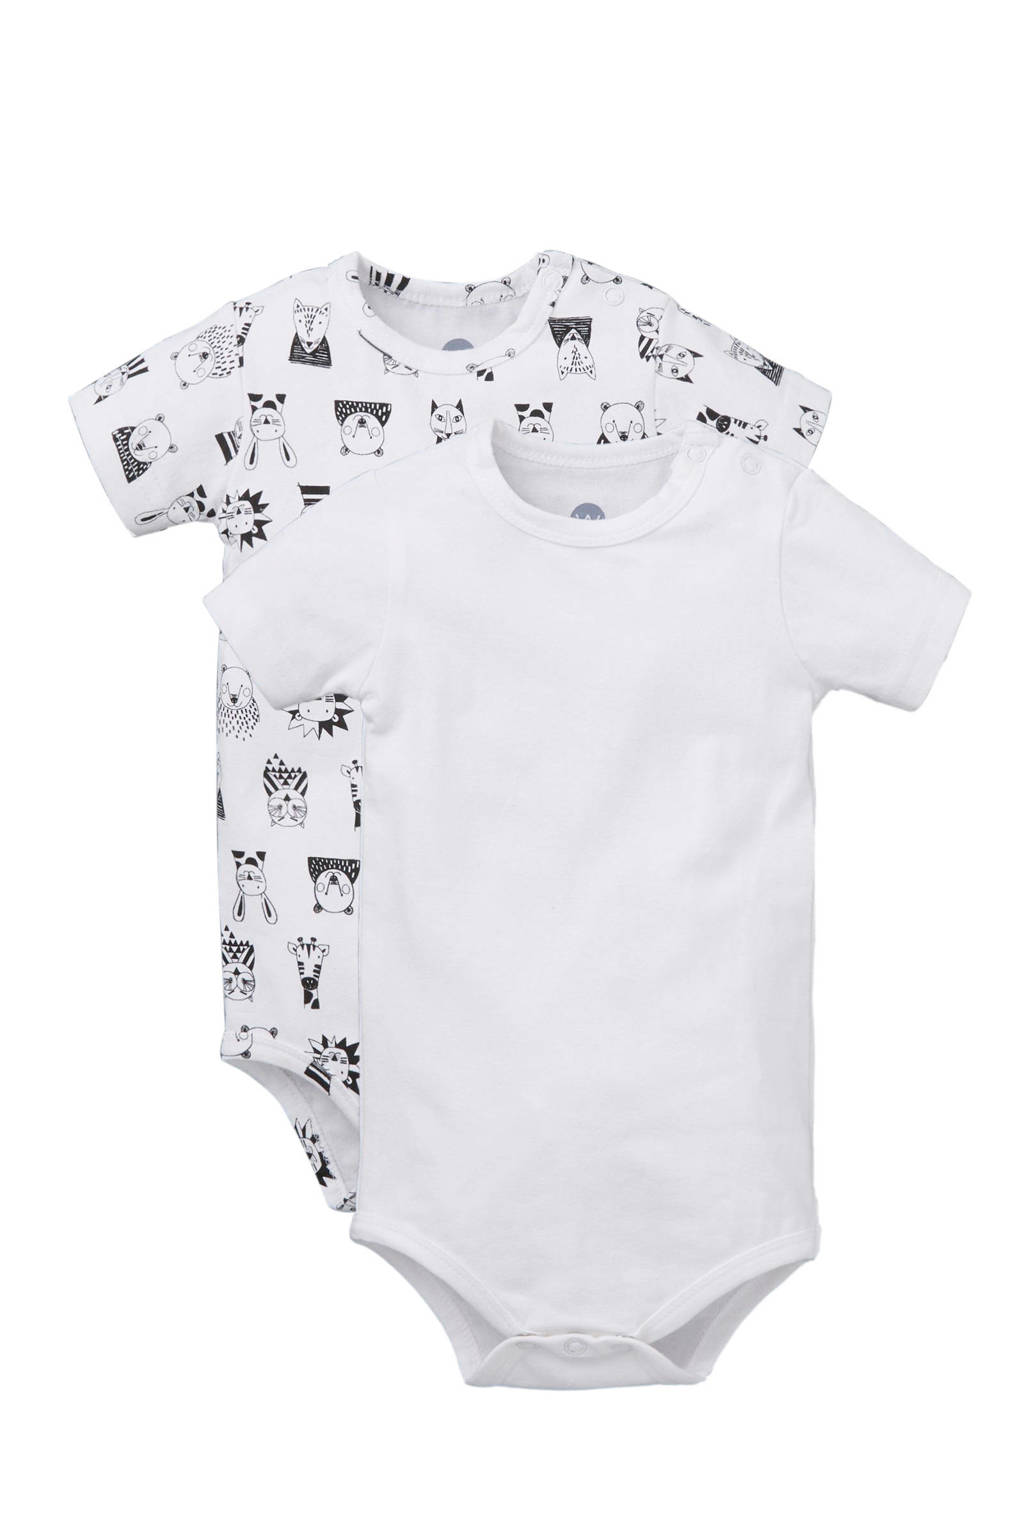 beasty newborn baby rompers - set van 2, wit/ zwart